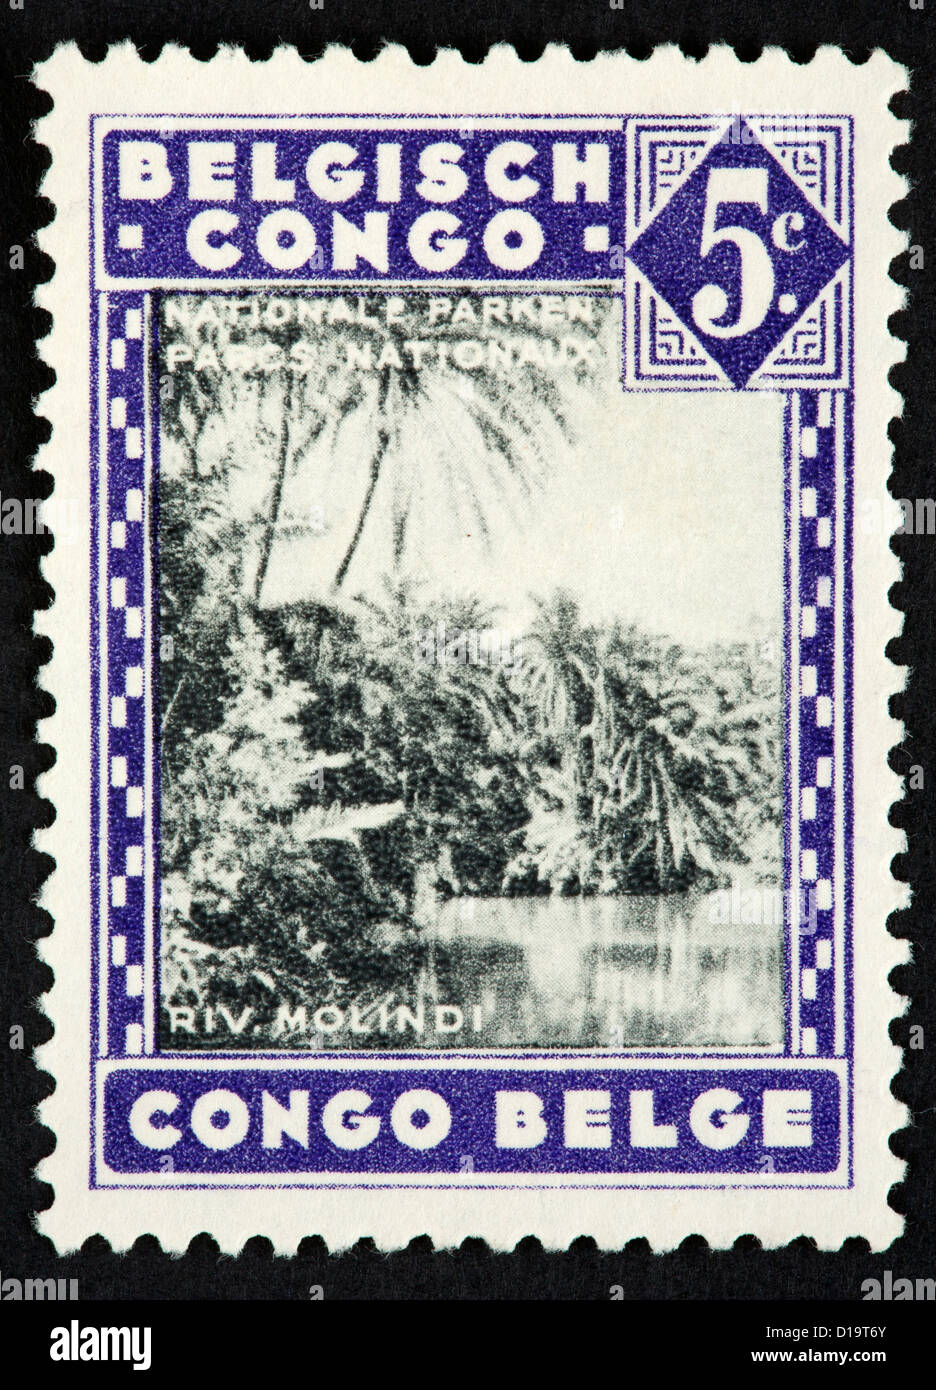 Belgian Congo postage stamp - Stock Image